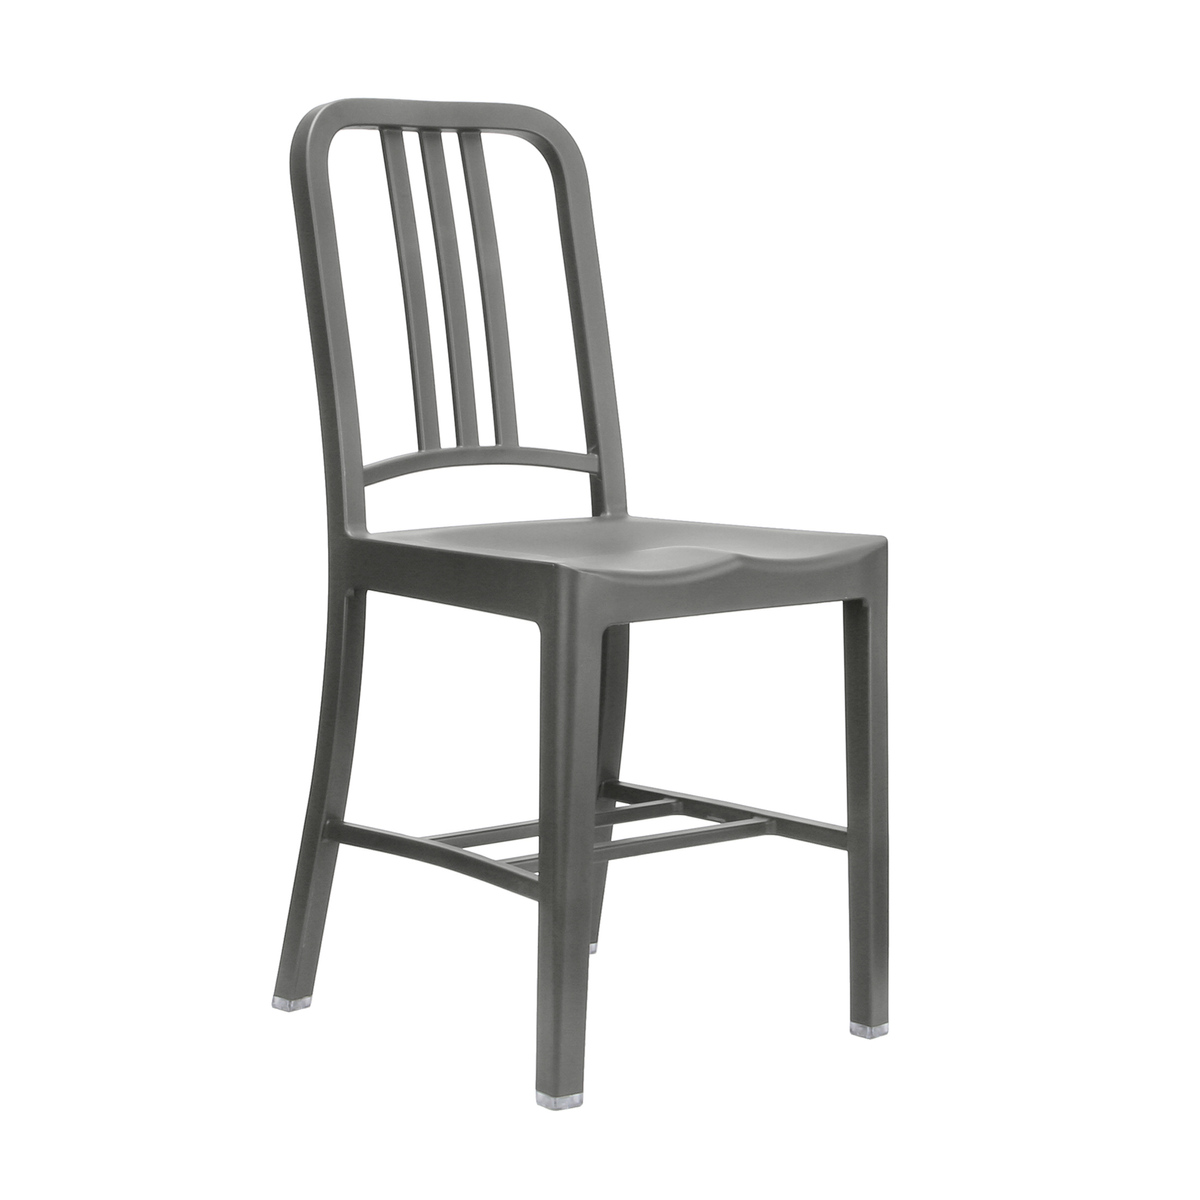 111 NAVY® CHAIR